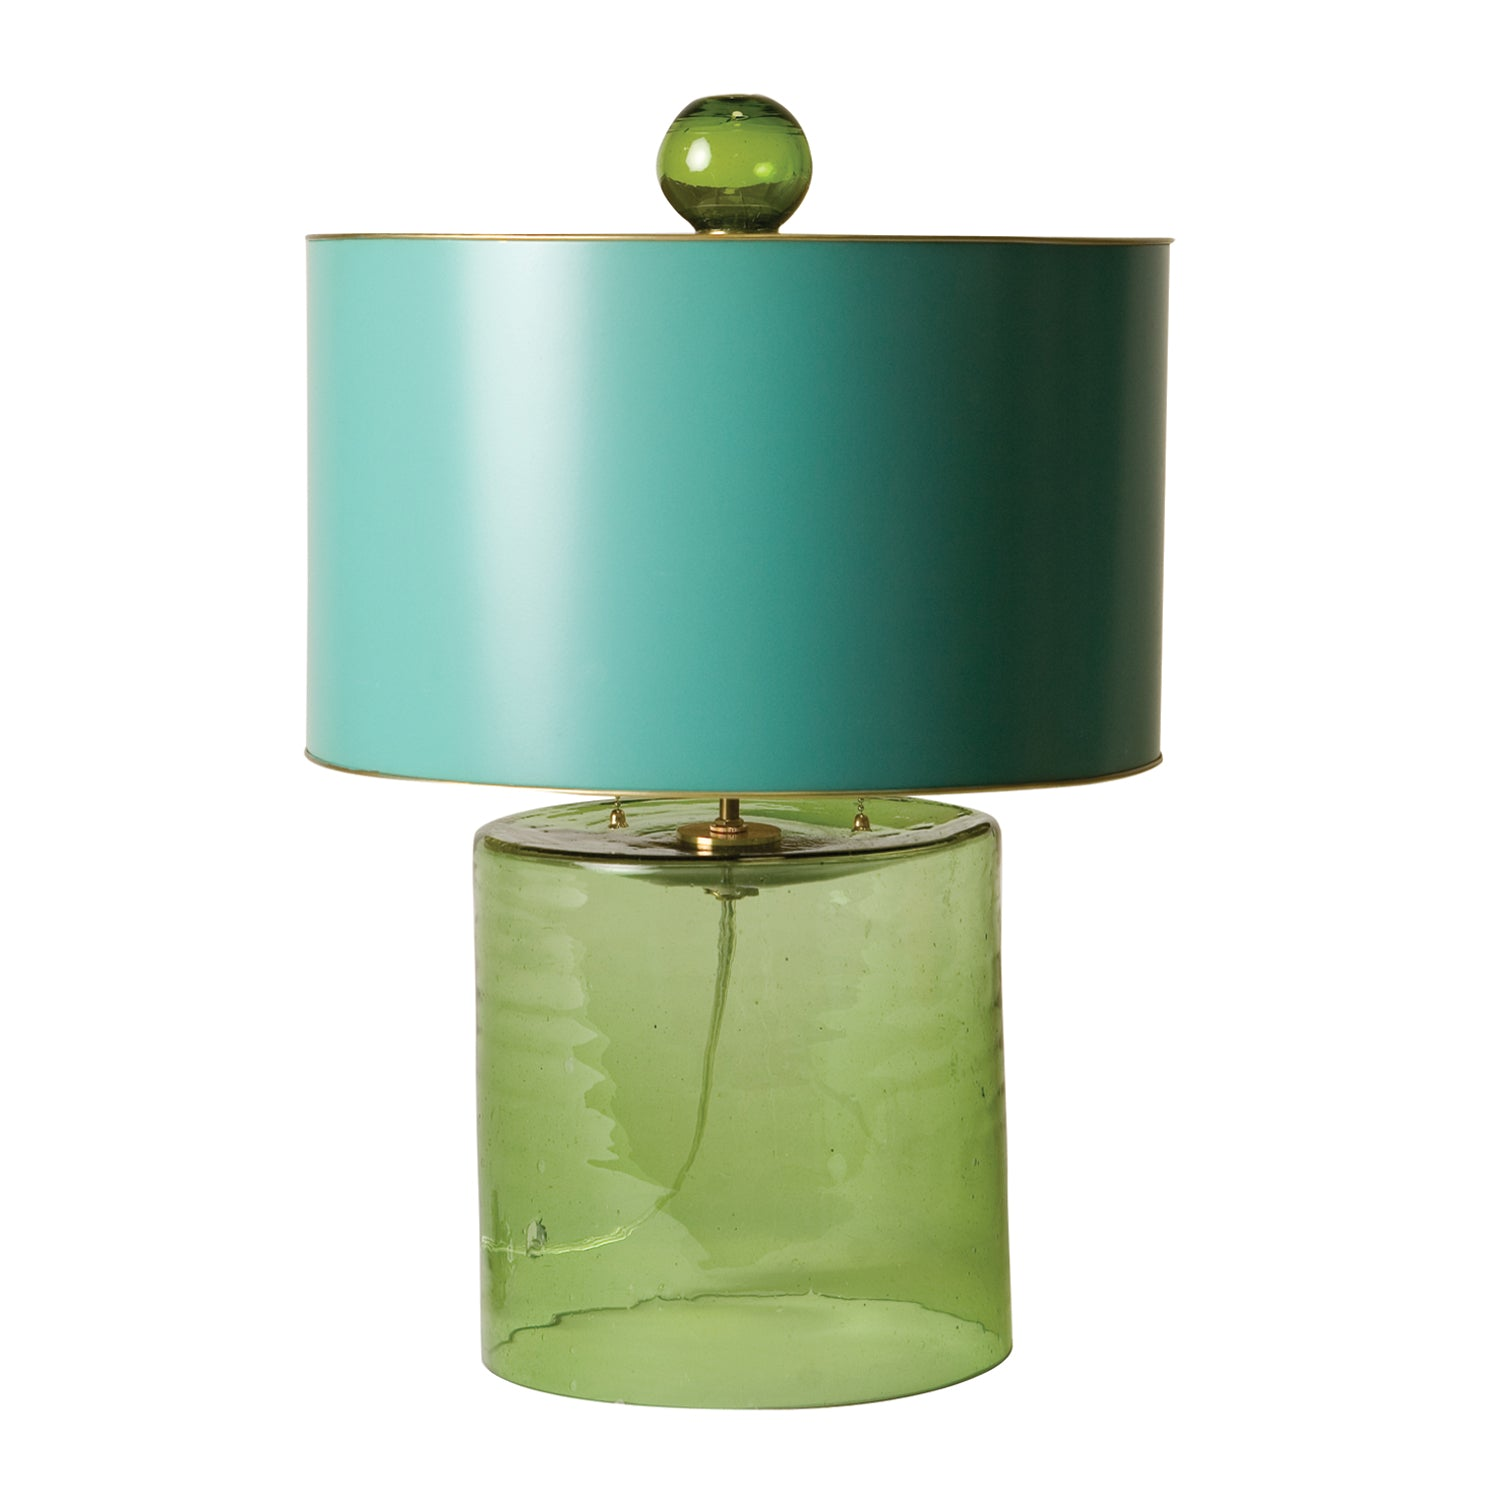 elisabeth glass lamp, green lamp with aqua tole shade